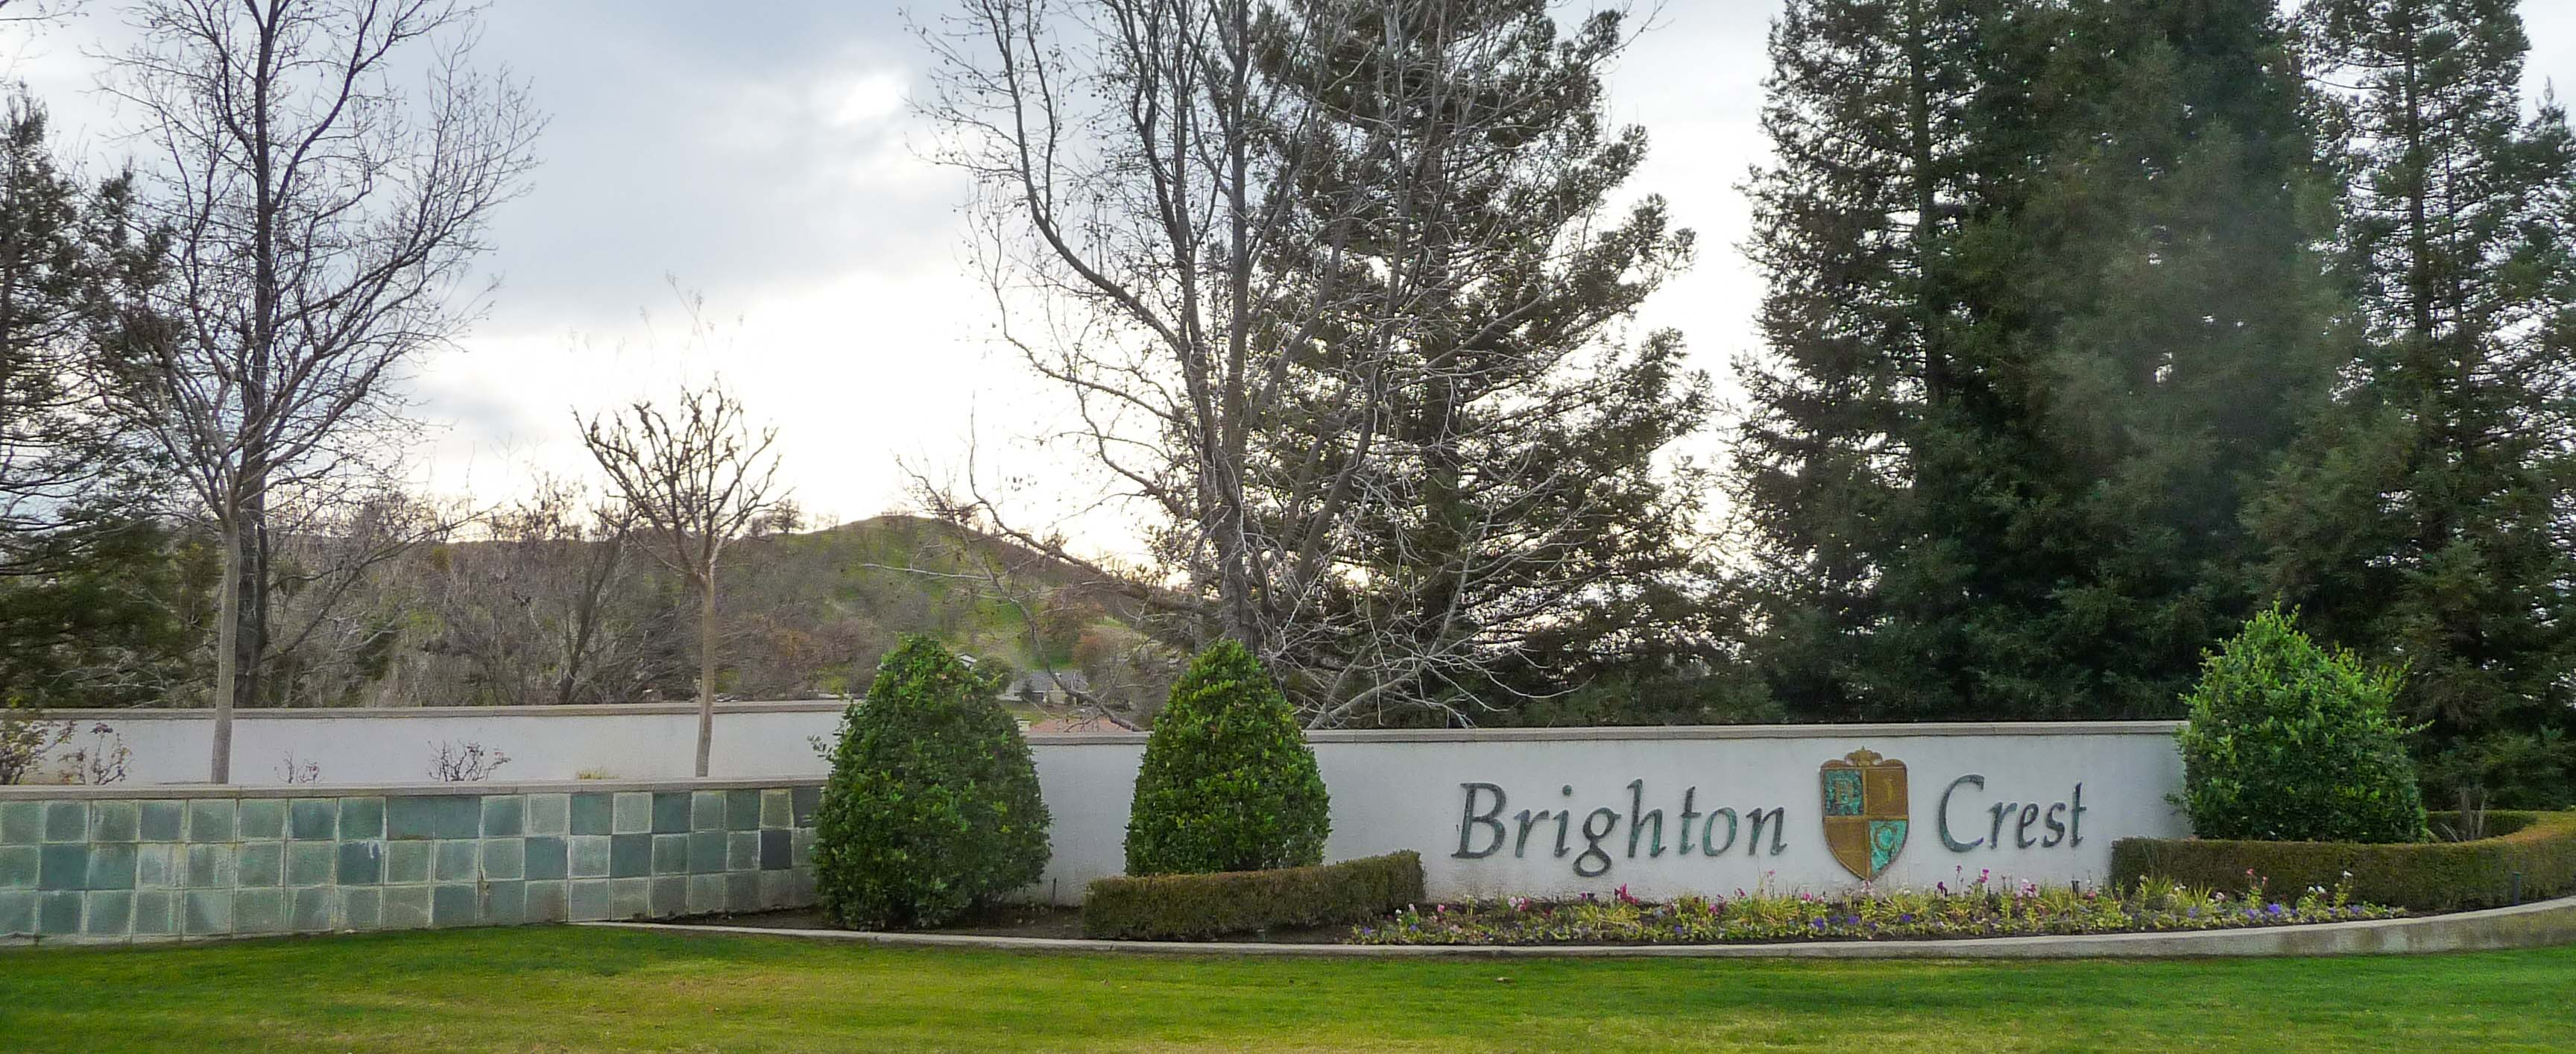 Brighton Crest Golf Friant California Golf Course